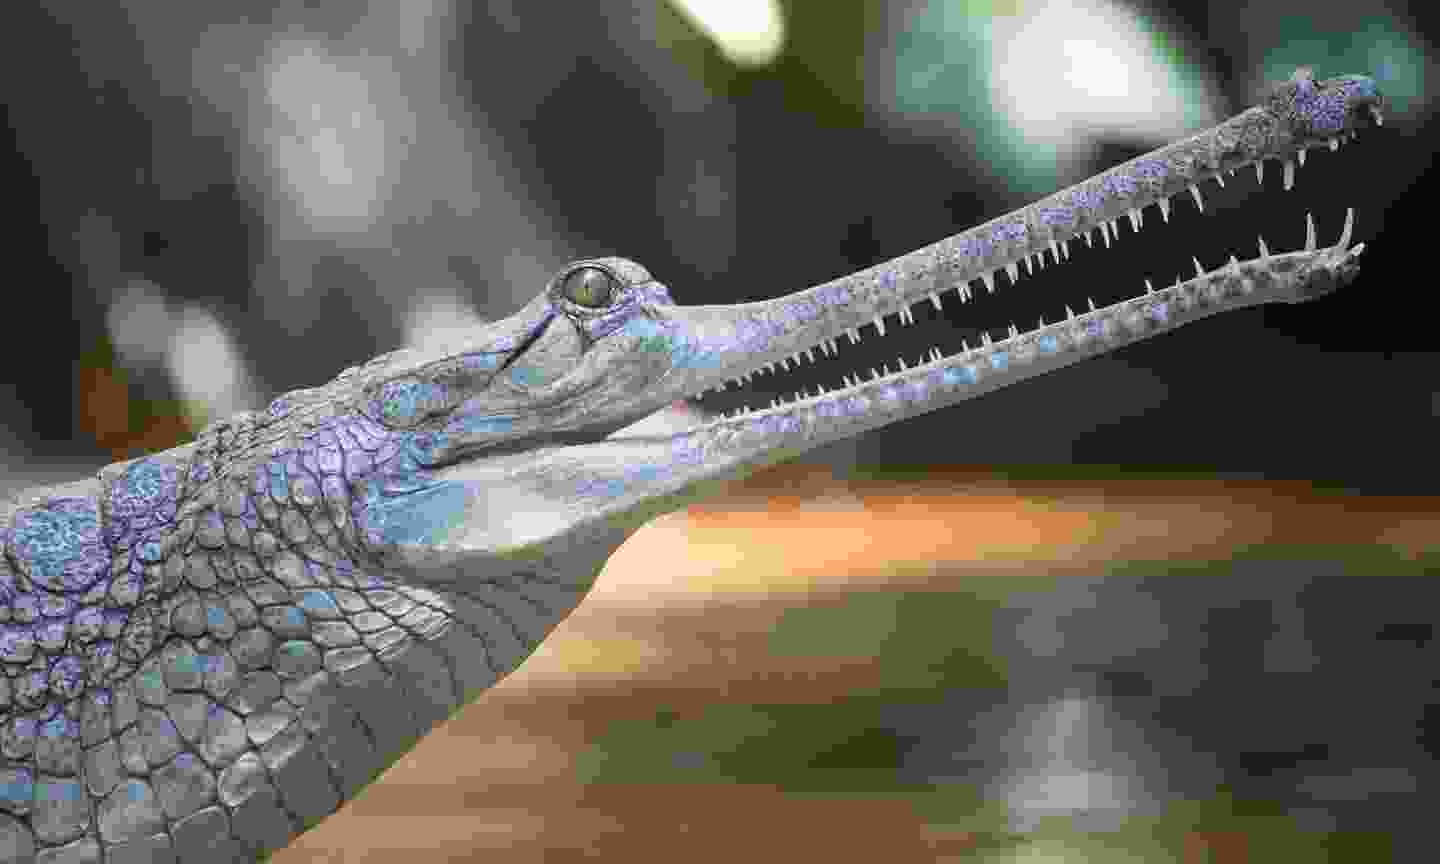 A young gharial in Nepal (Shutterstock)